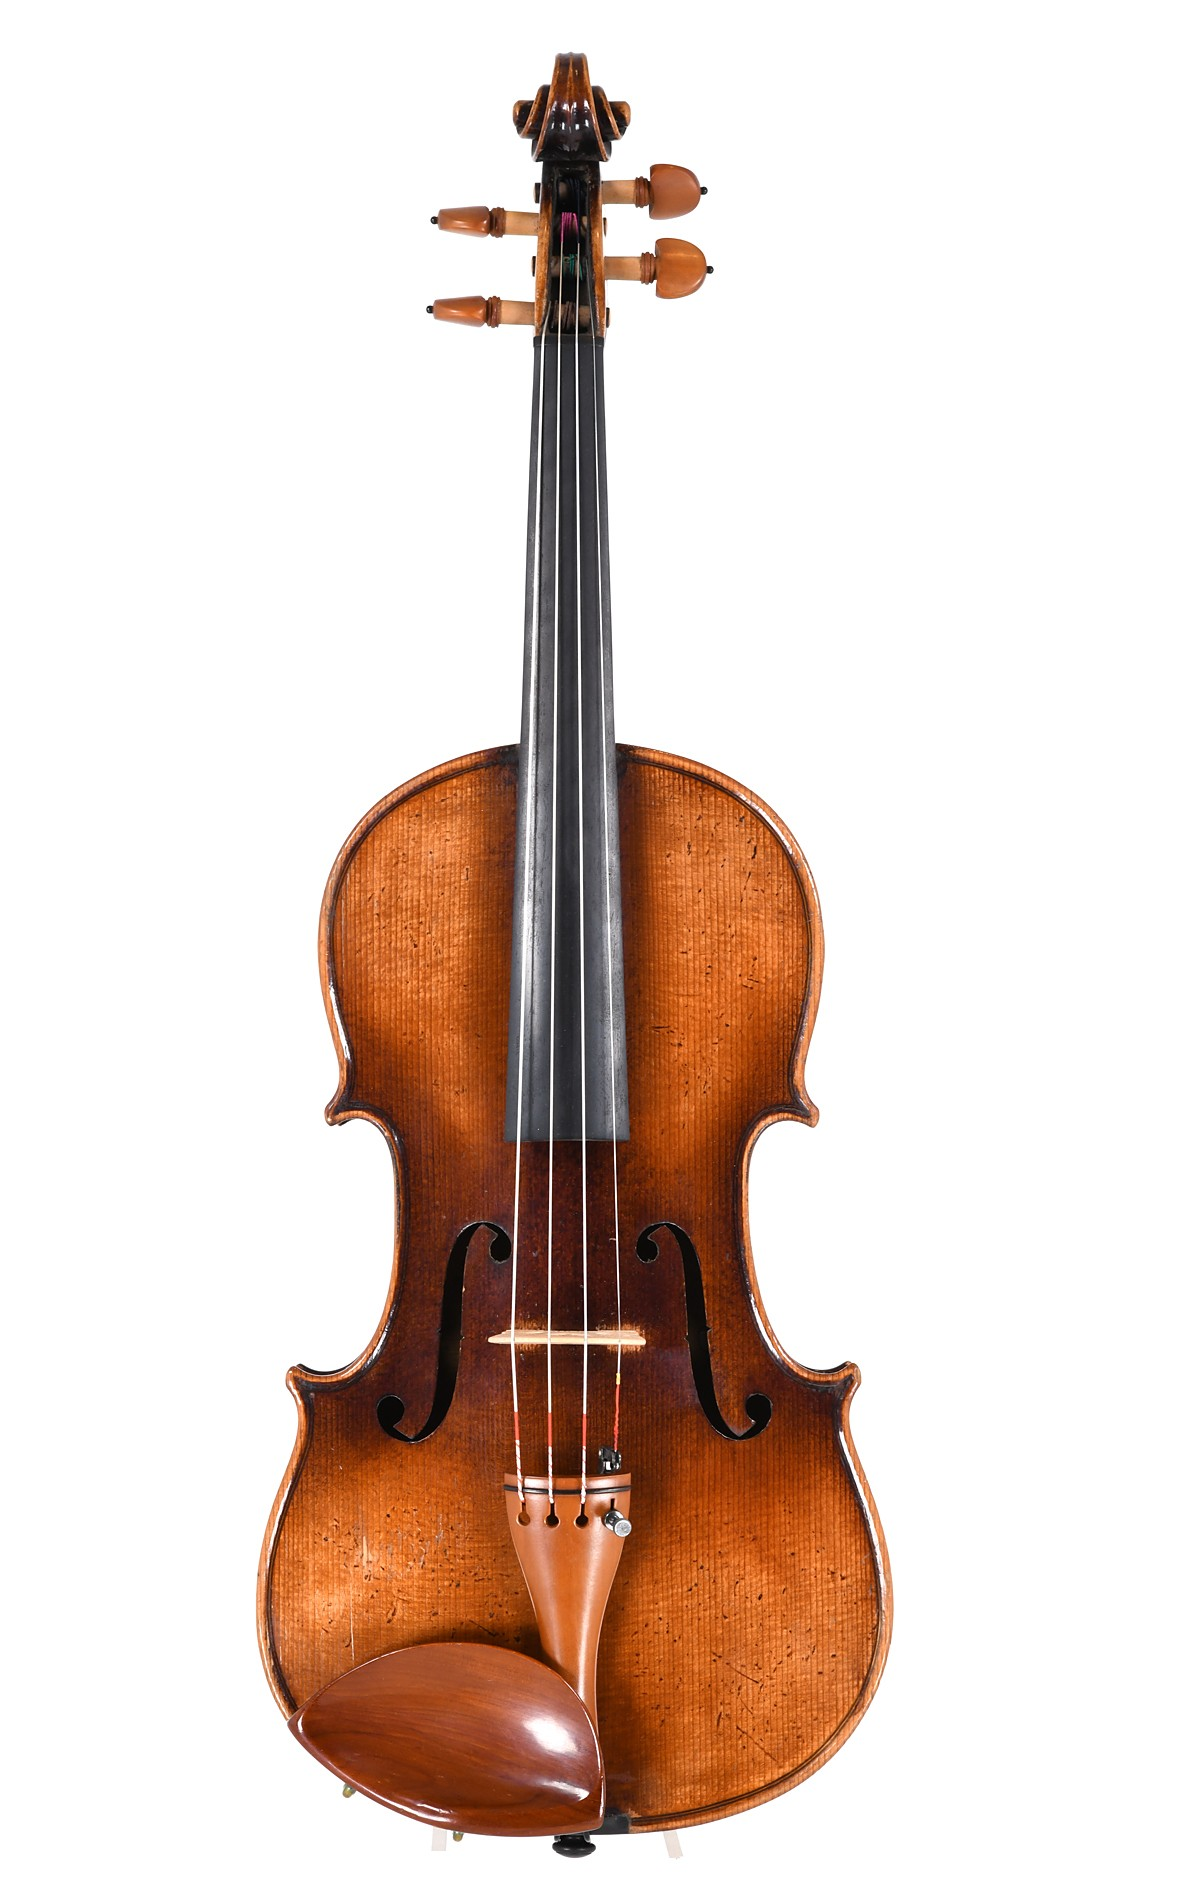 Old German violin with a warm, powerful sound - top